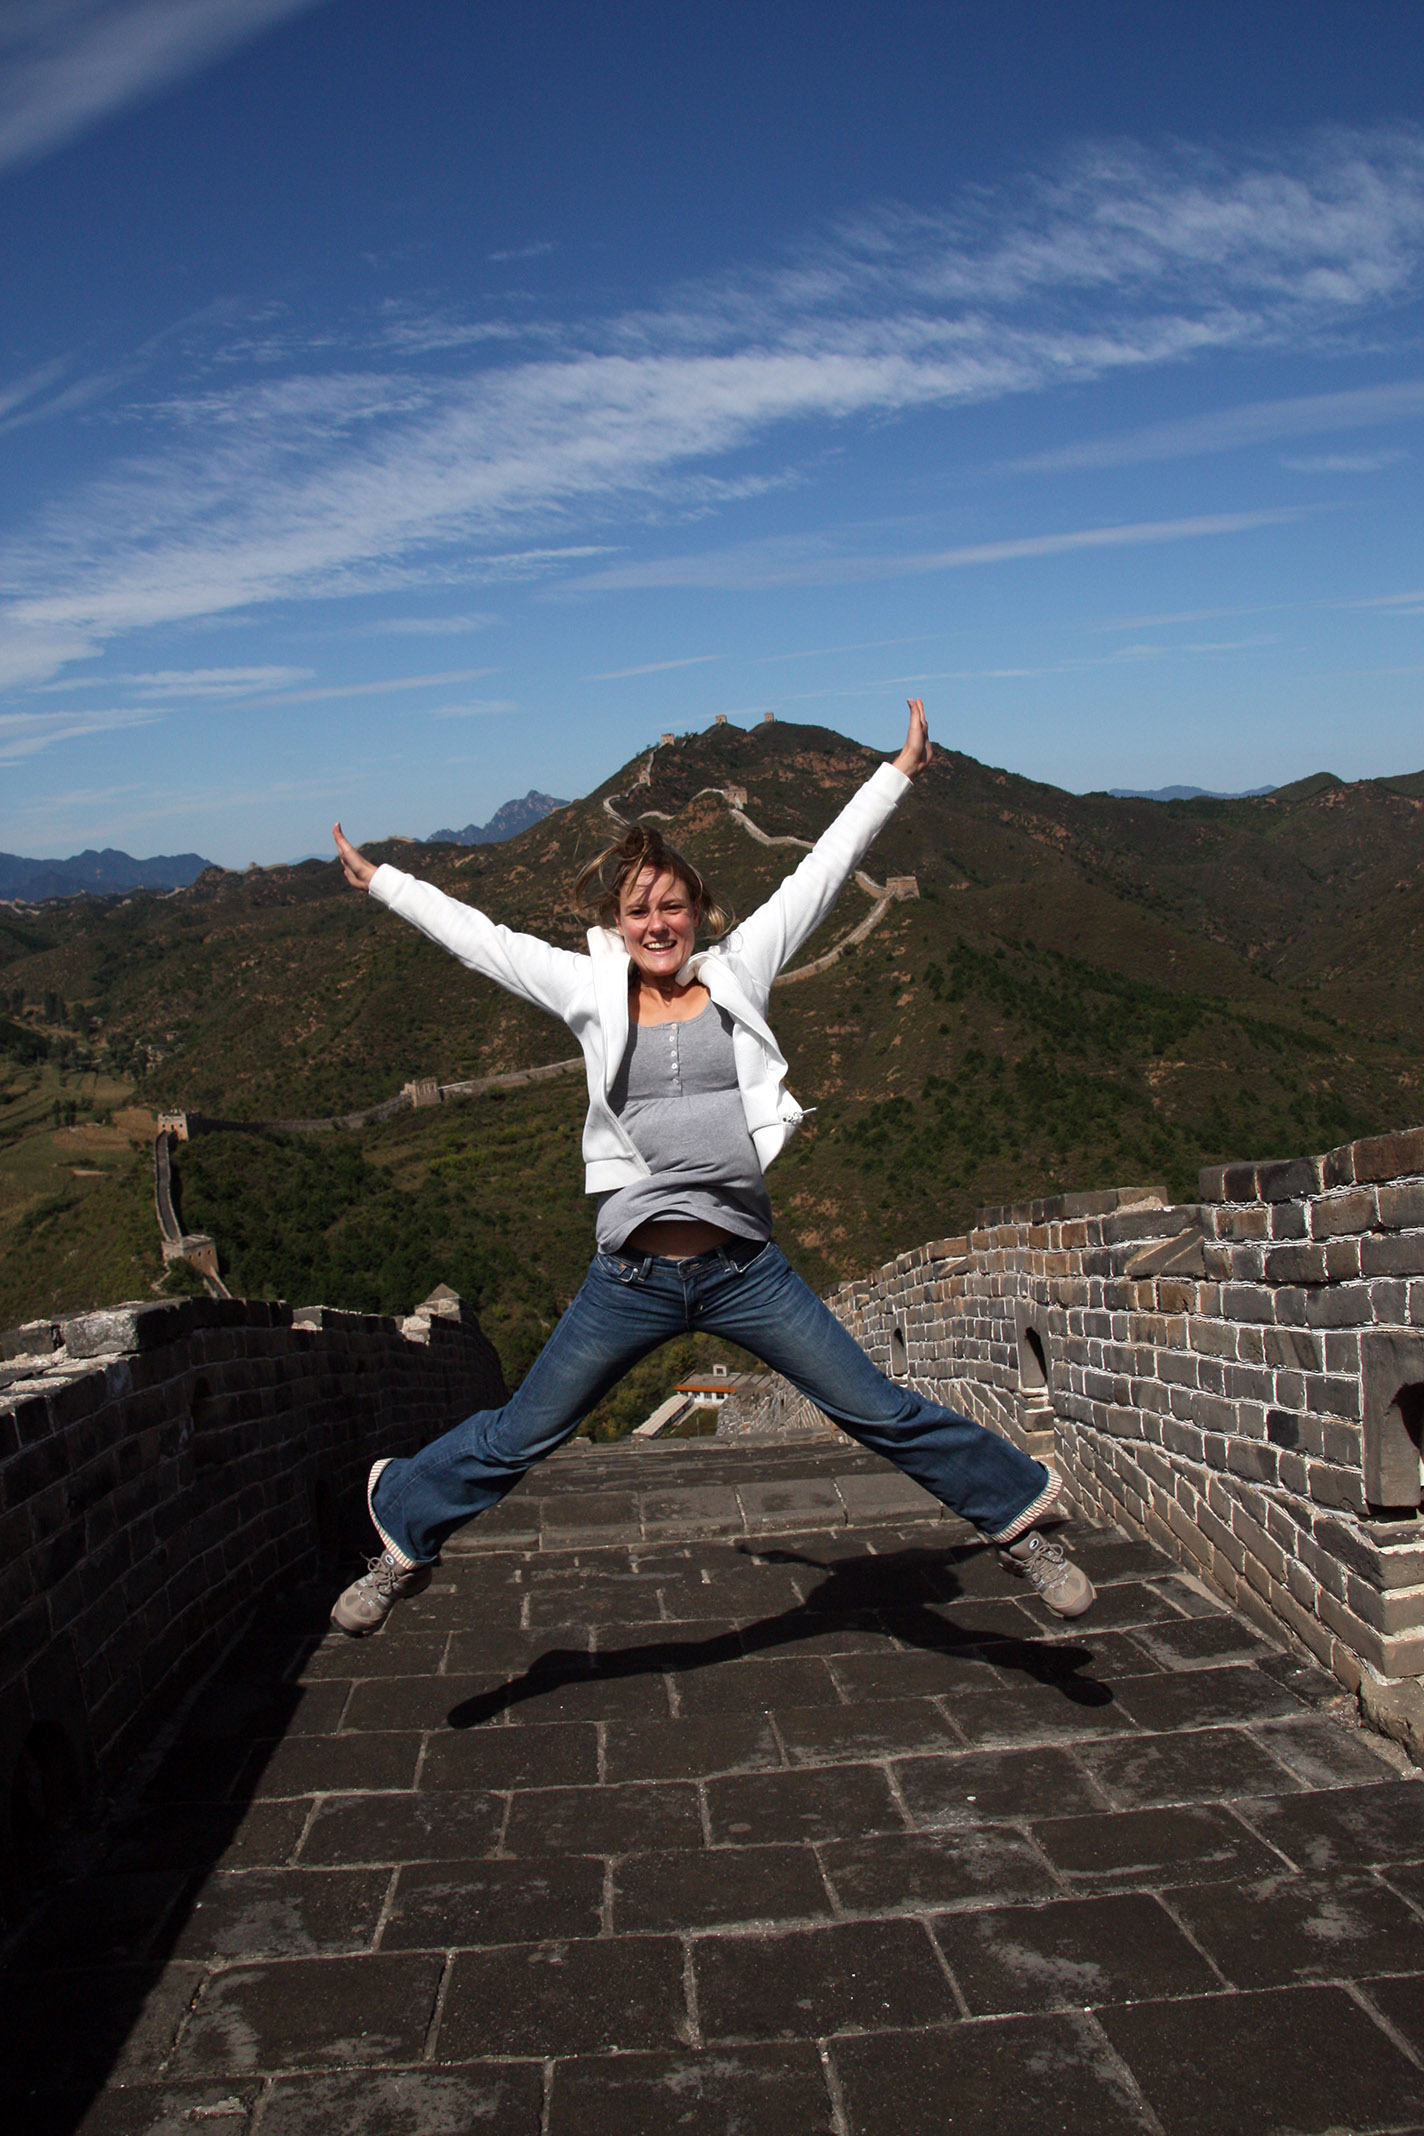 People_Silja_03.jpg - The Great Wall: Silja's jumping...